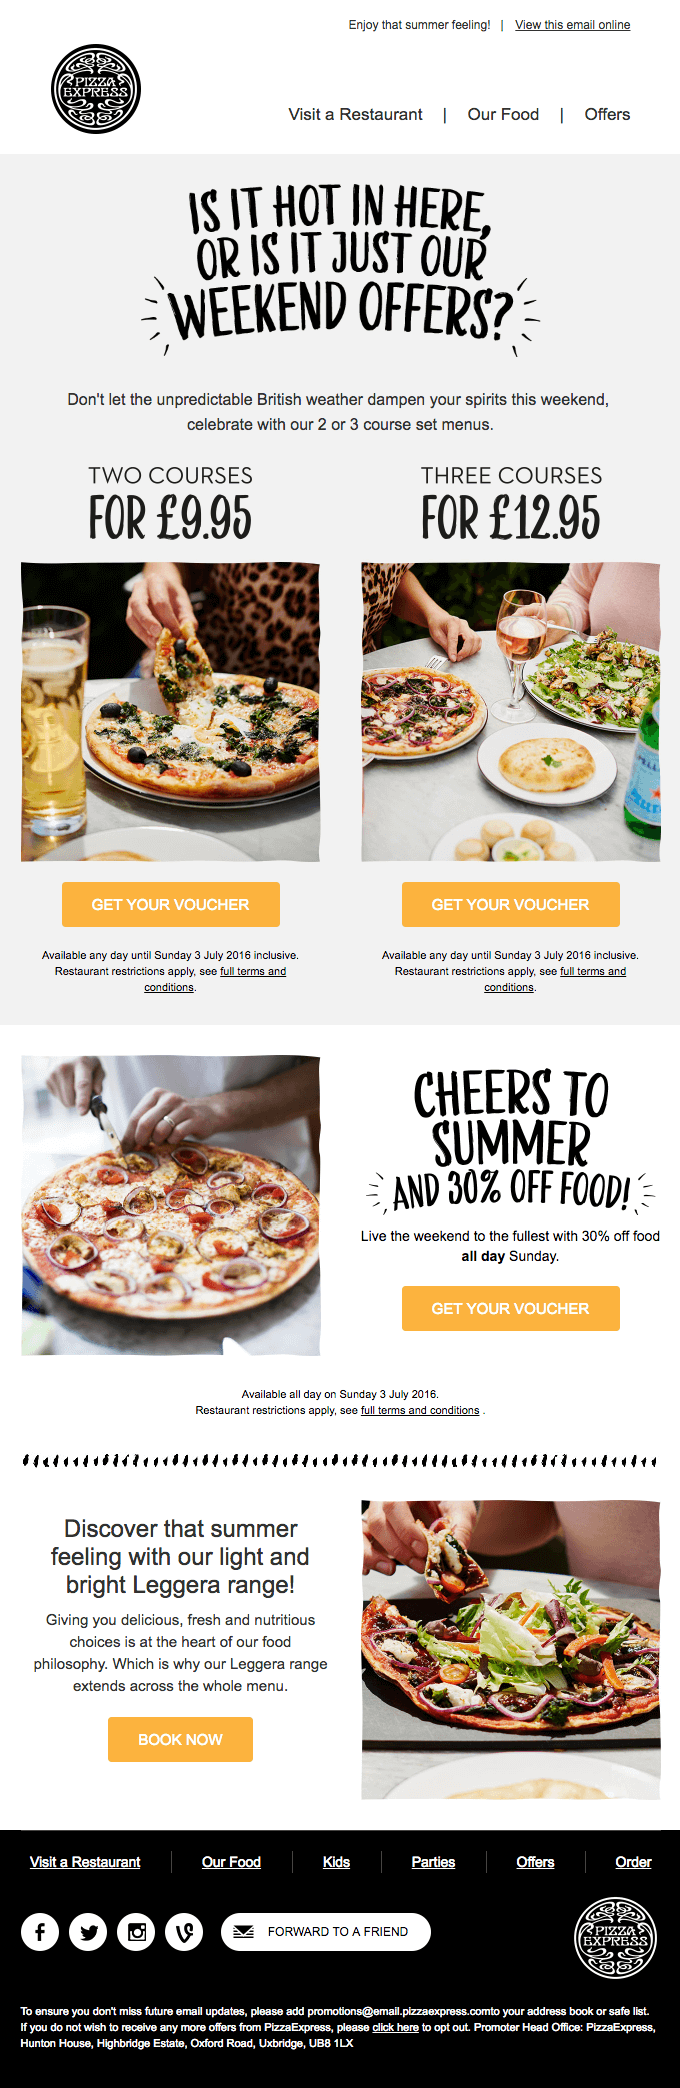 Email Design For A Restaurant Email Marketing Design Email Design Email Design Inspiration